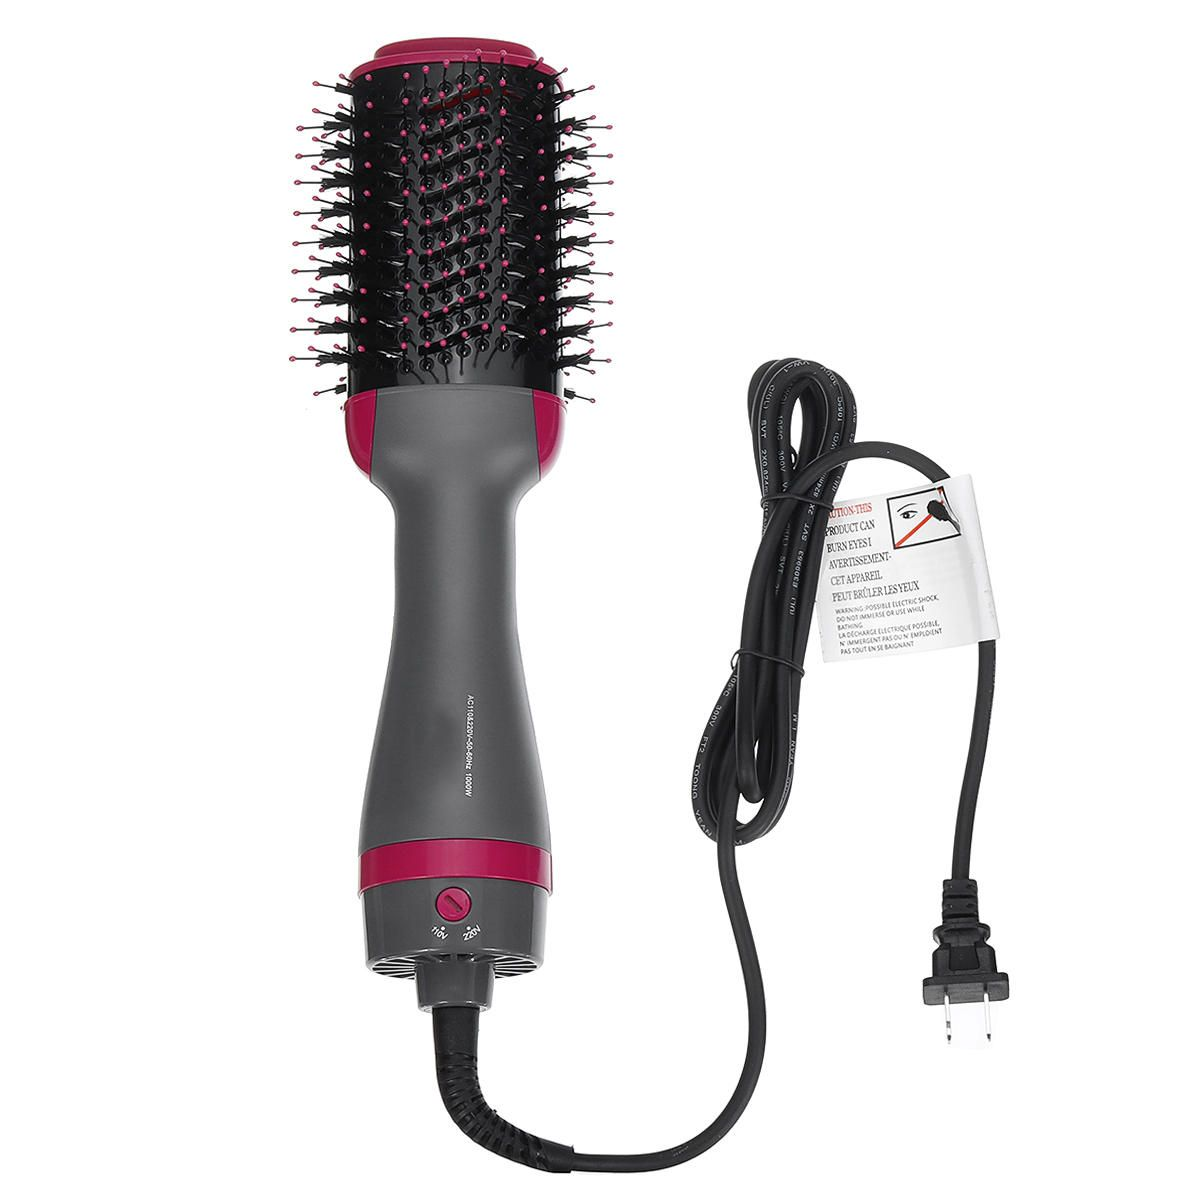 110V / 220V 2 In 1 1000W Hair Dryer Blower Brush Comb Volumizer Straightening Curling Smoothing Comb Hair Drying Styling Tool